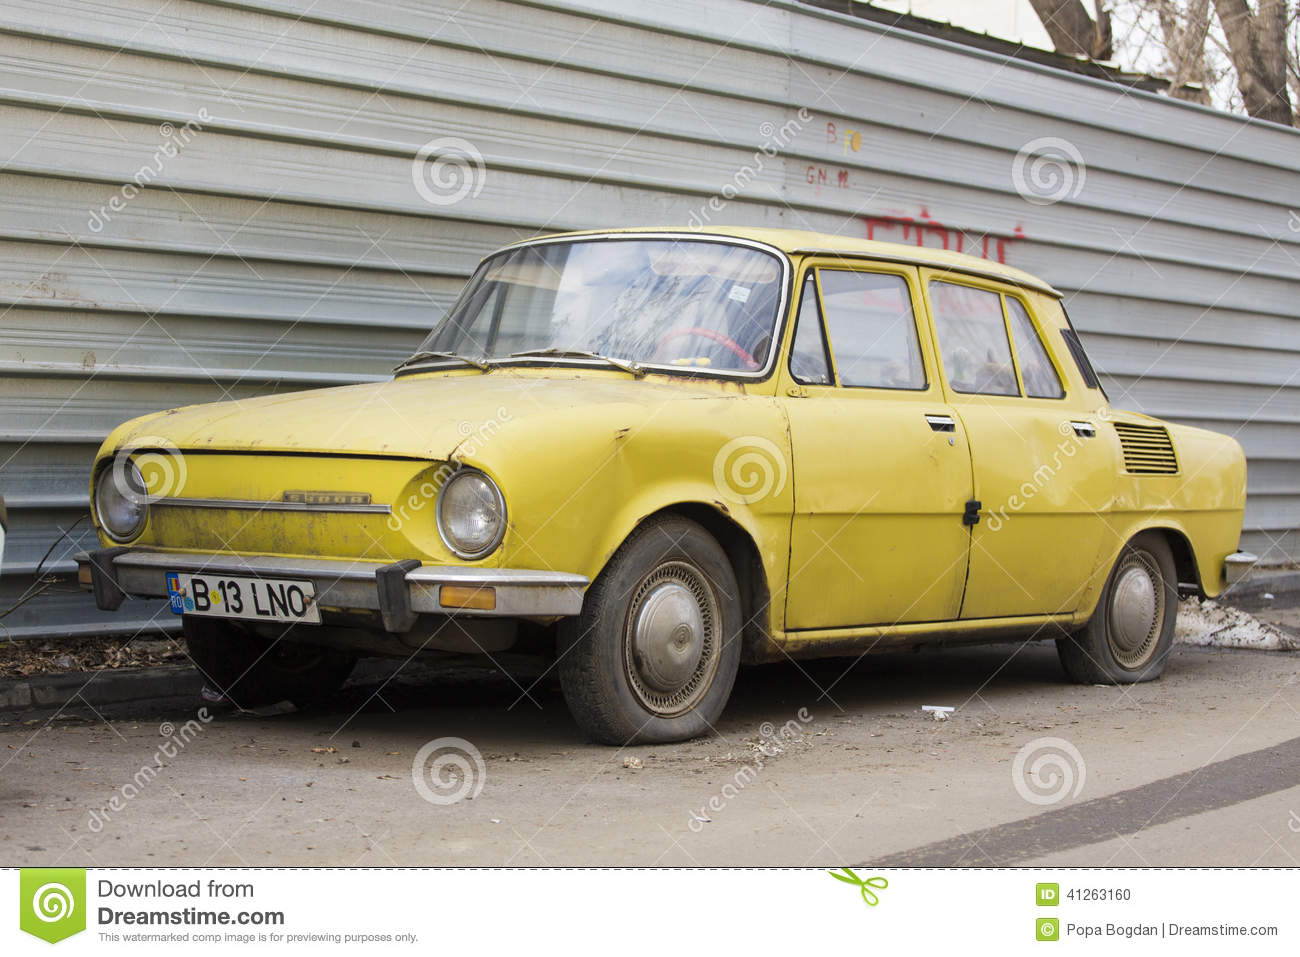 skoda-car-old-parked-autumn-show-41263160.jpg